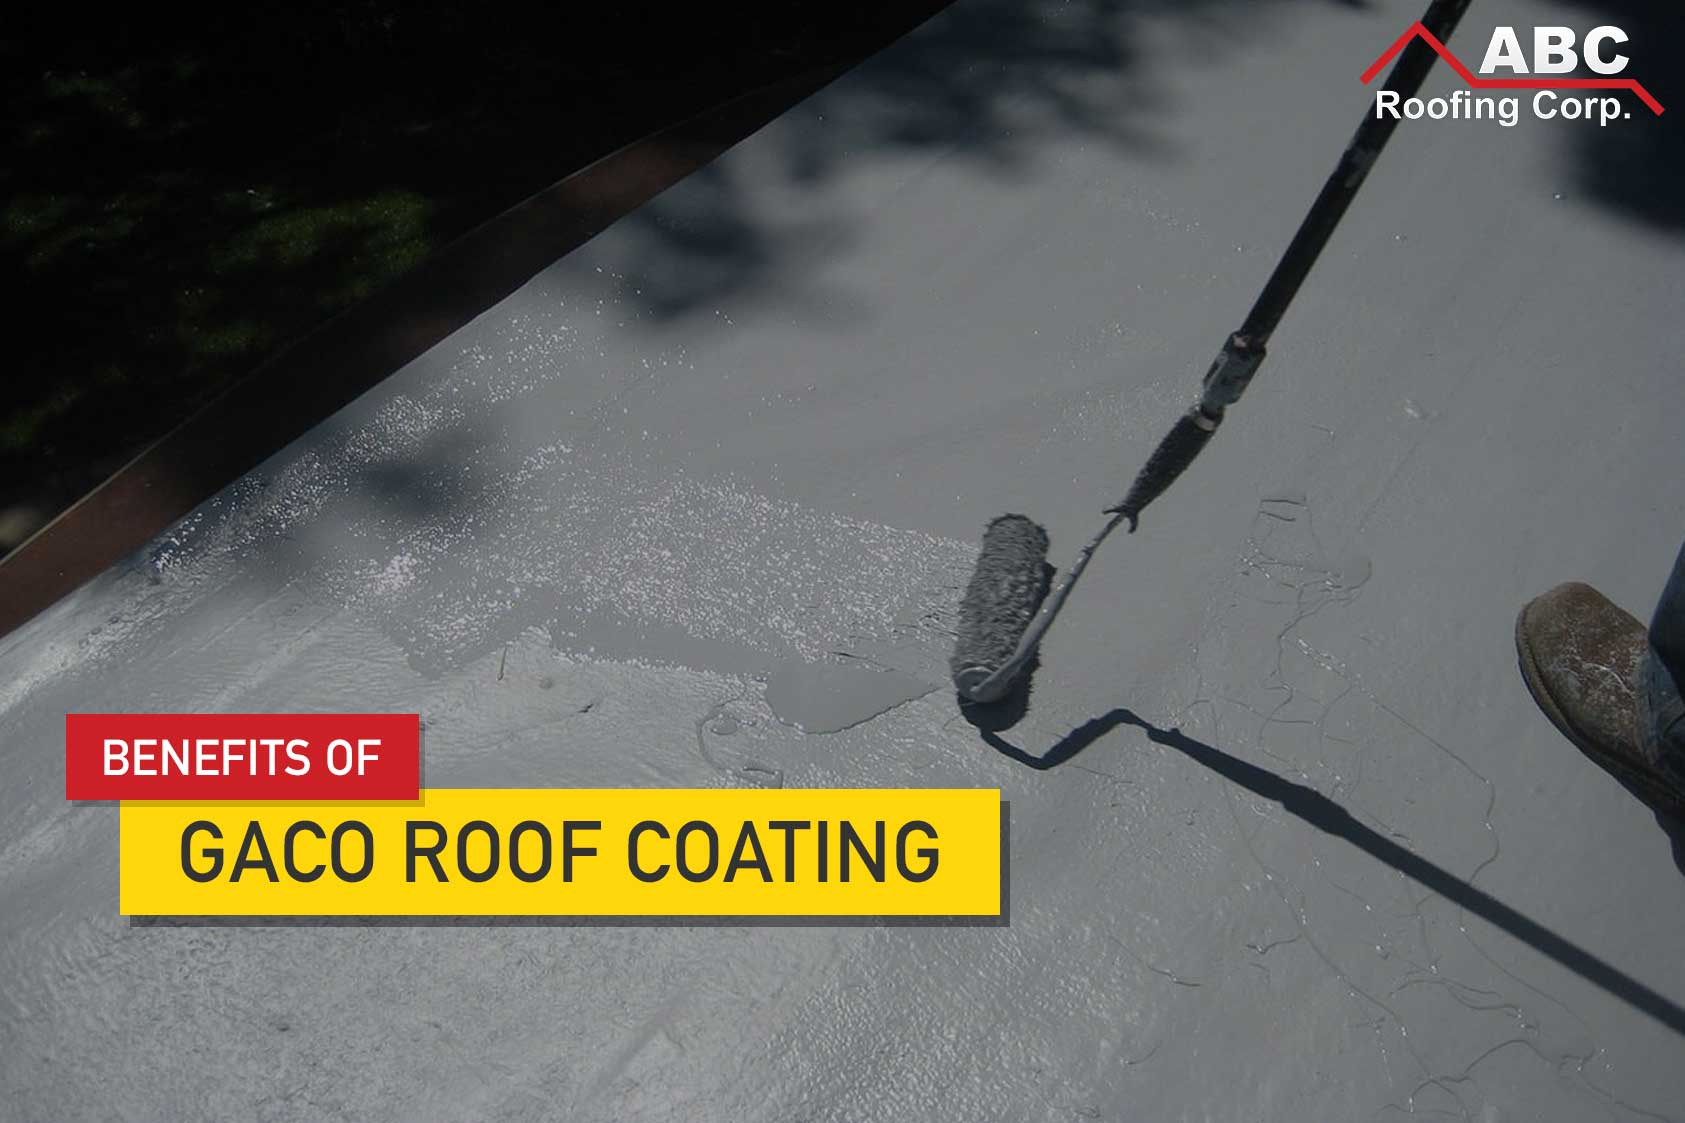 Gaco Roof Coating